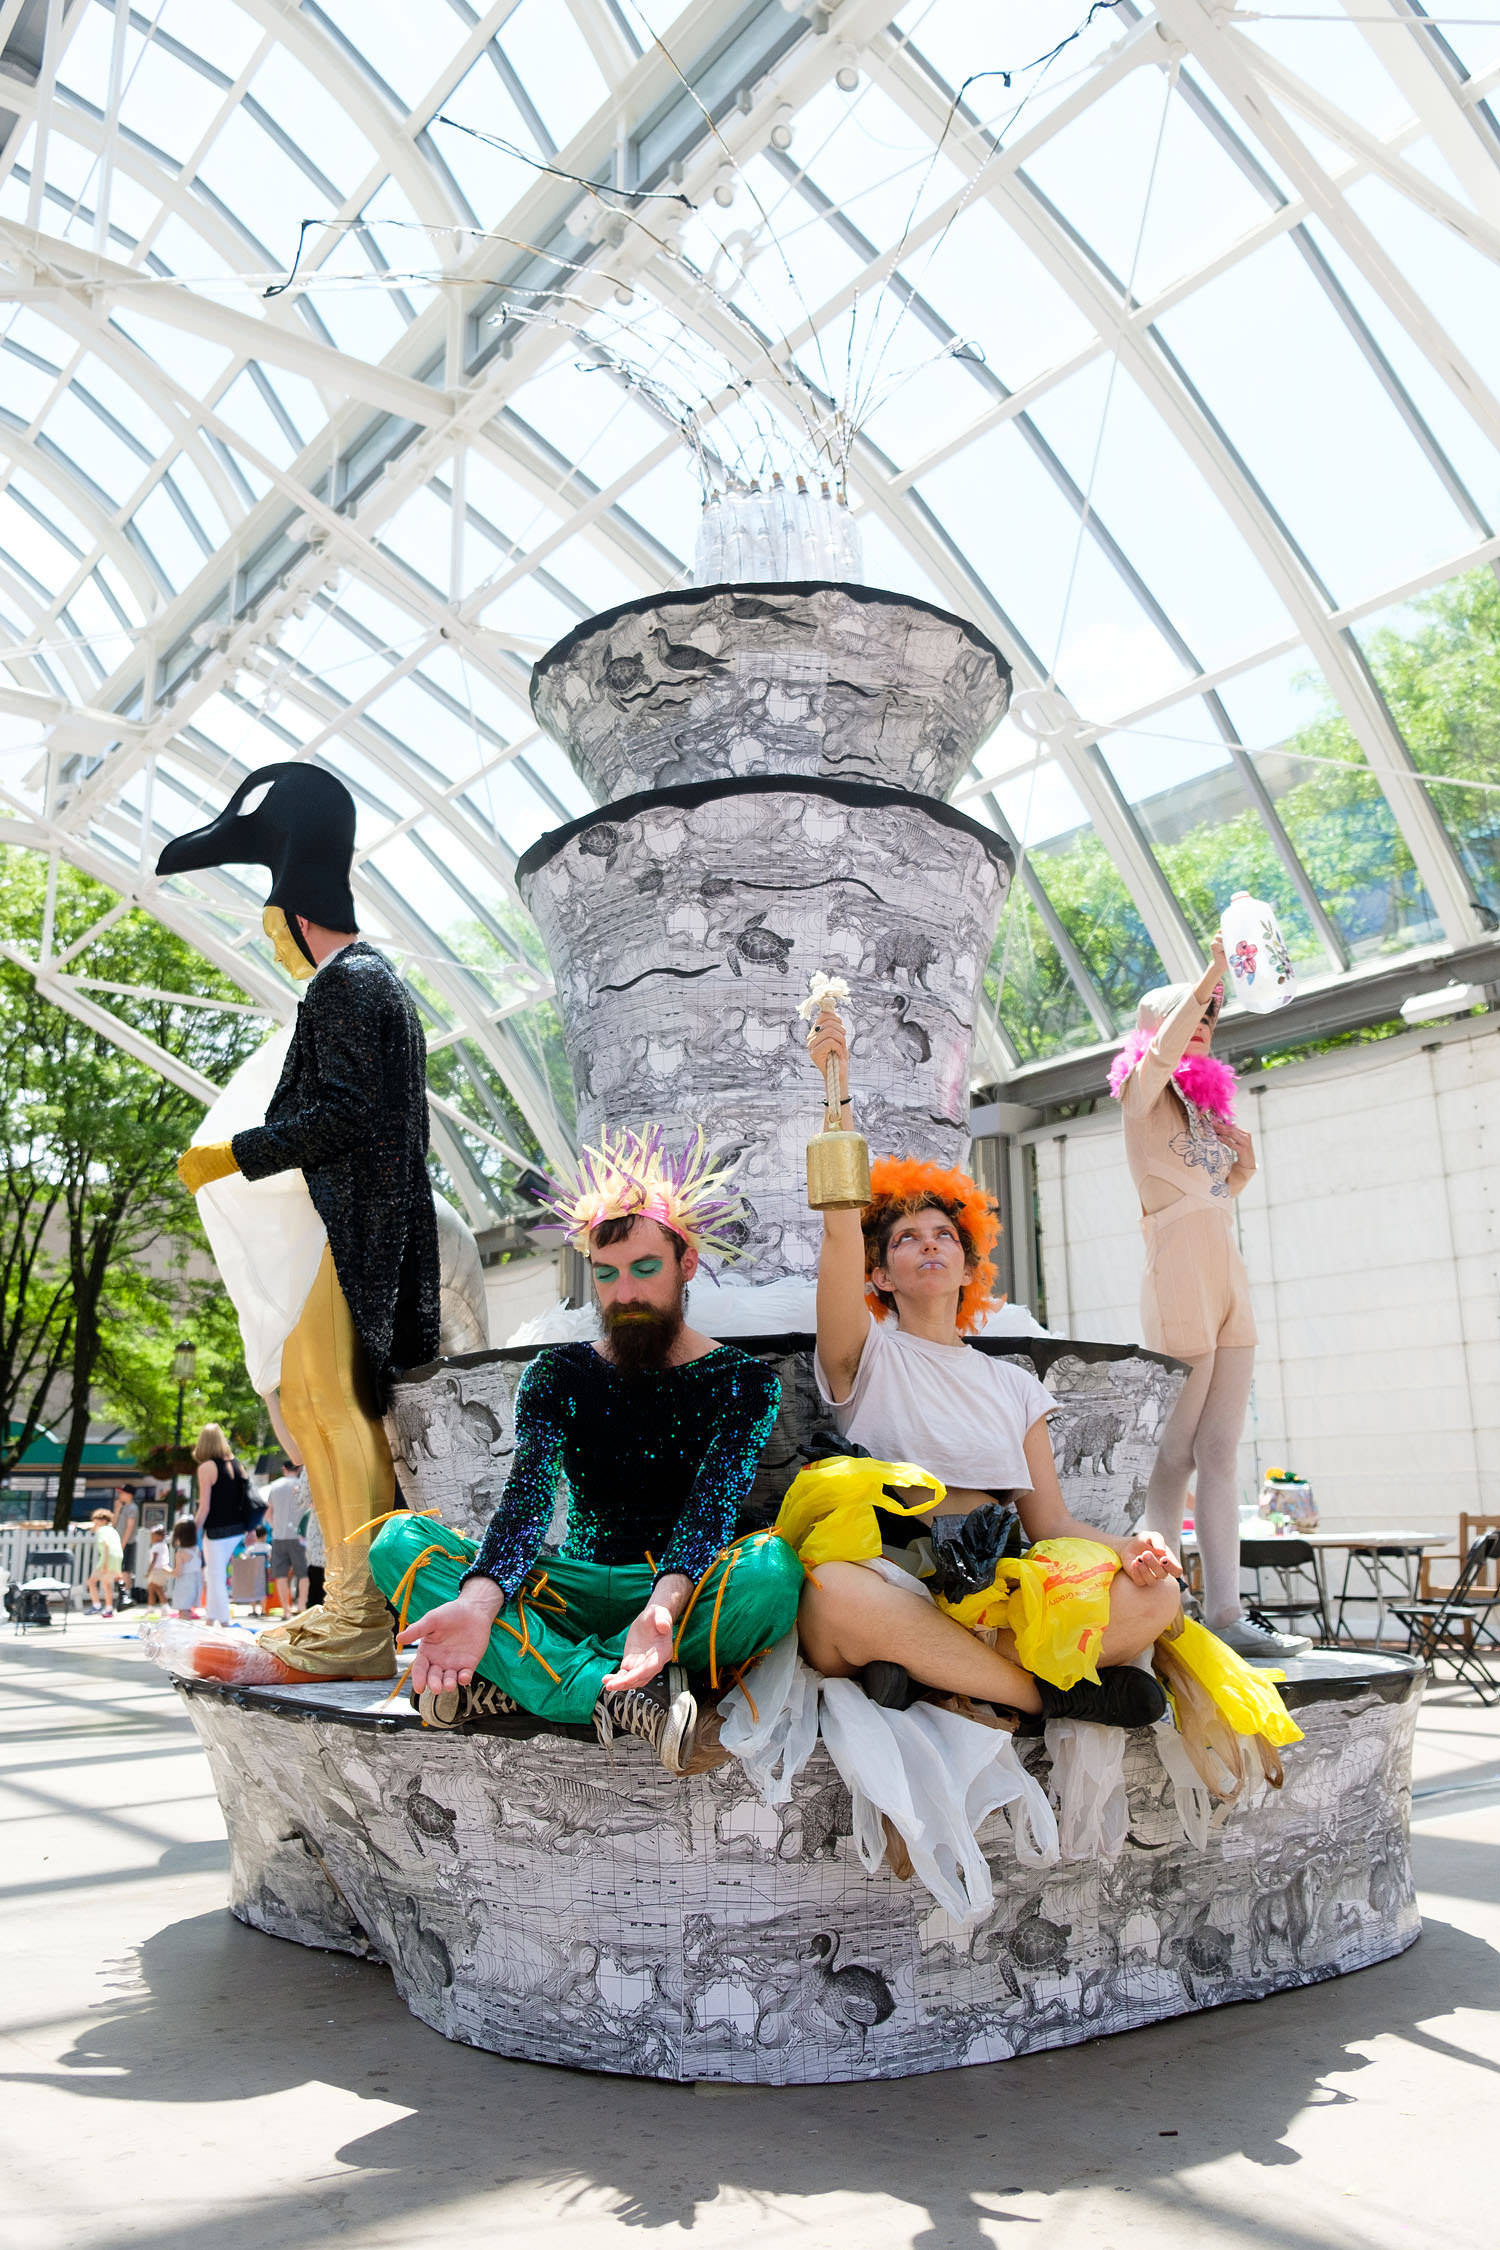 Performance artists at the Northern Virginia Fine Arts Festival at Reston Town Center